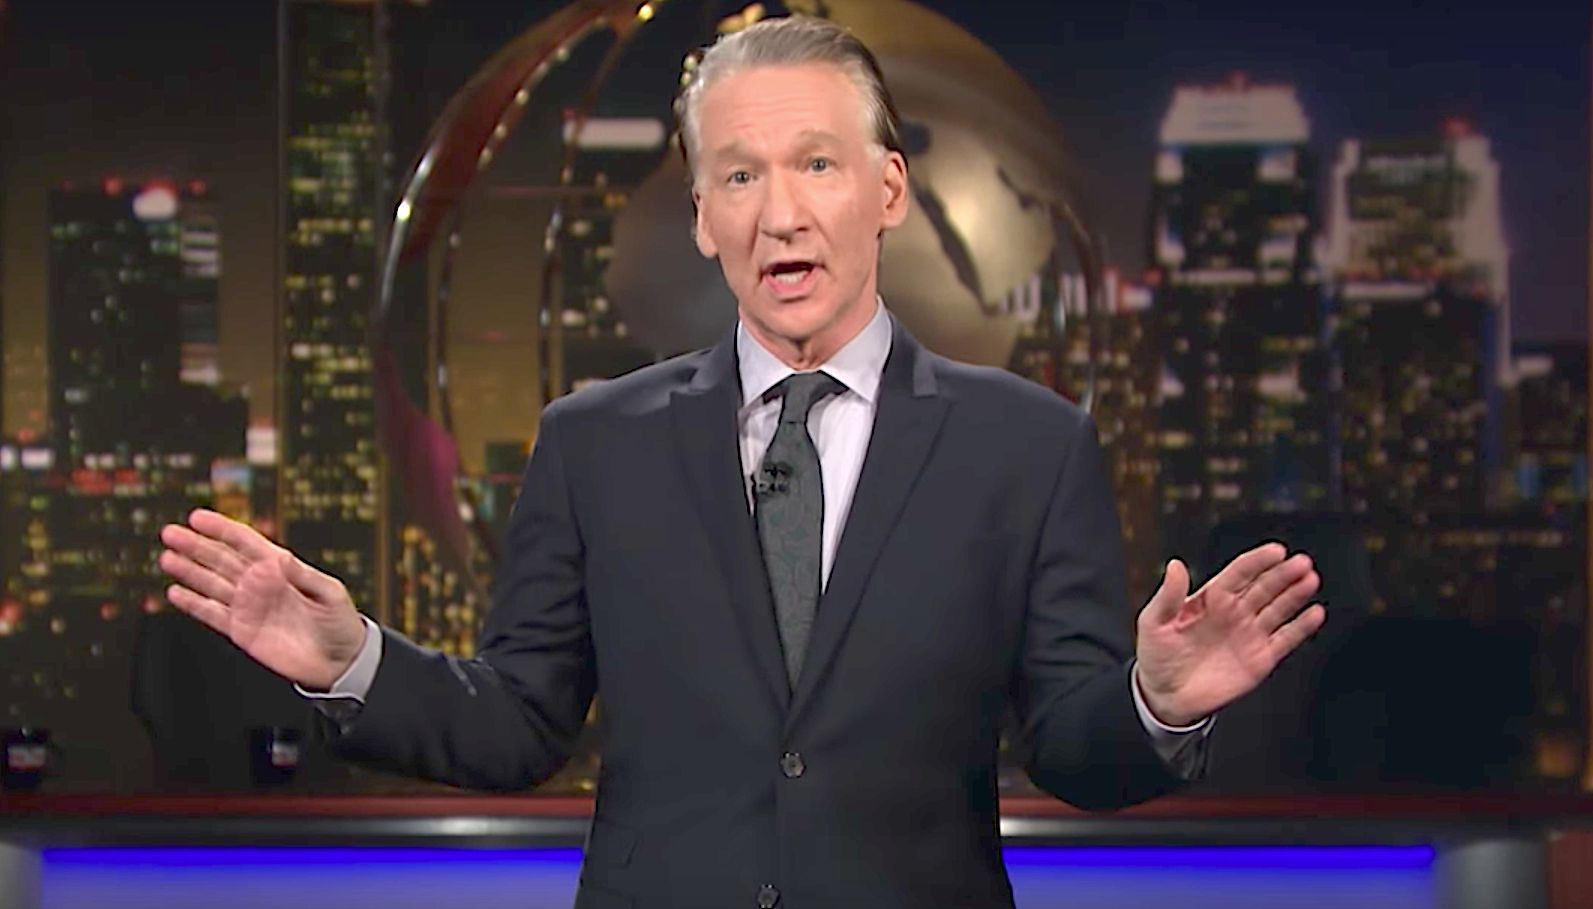 Bill Maher: Don't Put Al Franken In With Roy Moore, Kevin Spacey Or Donald Trump